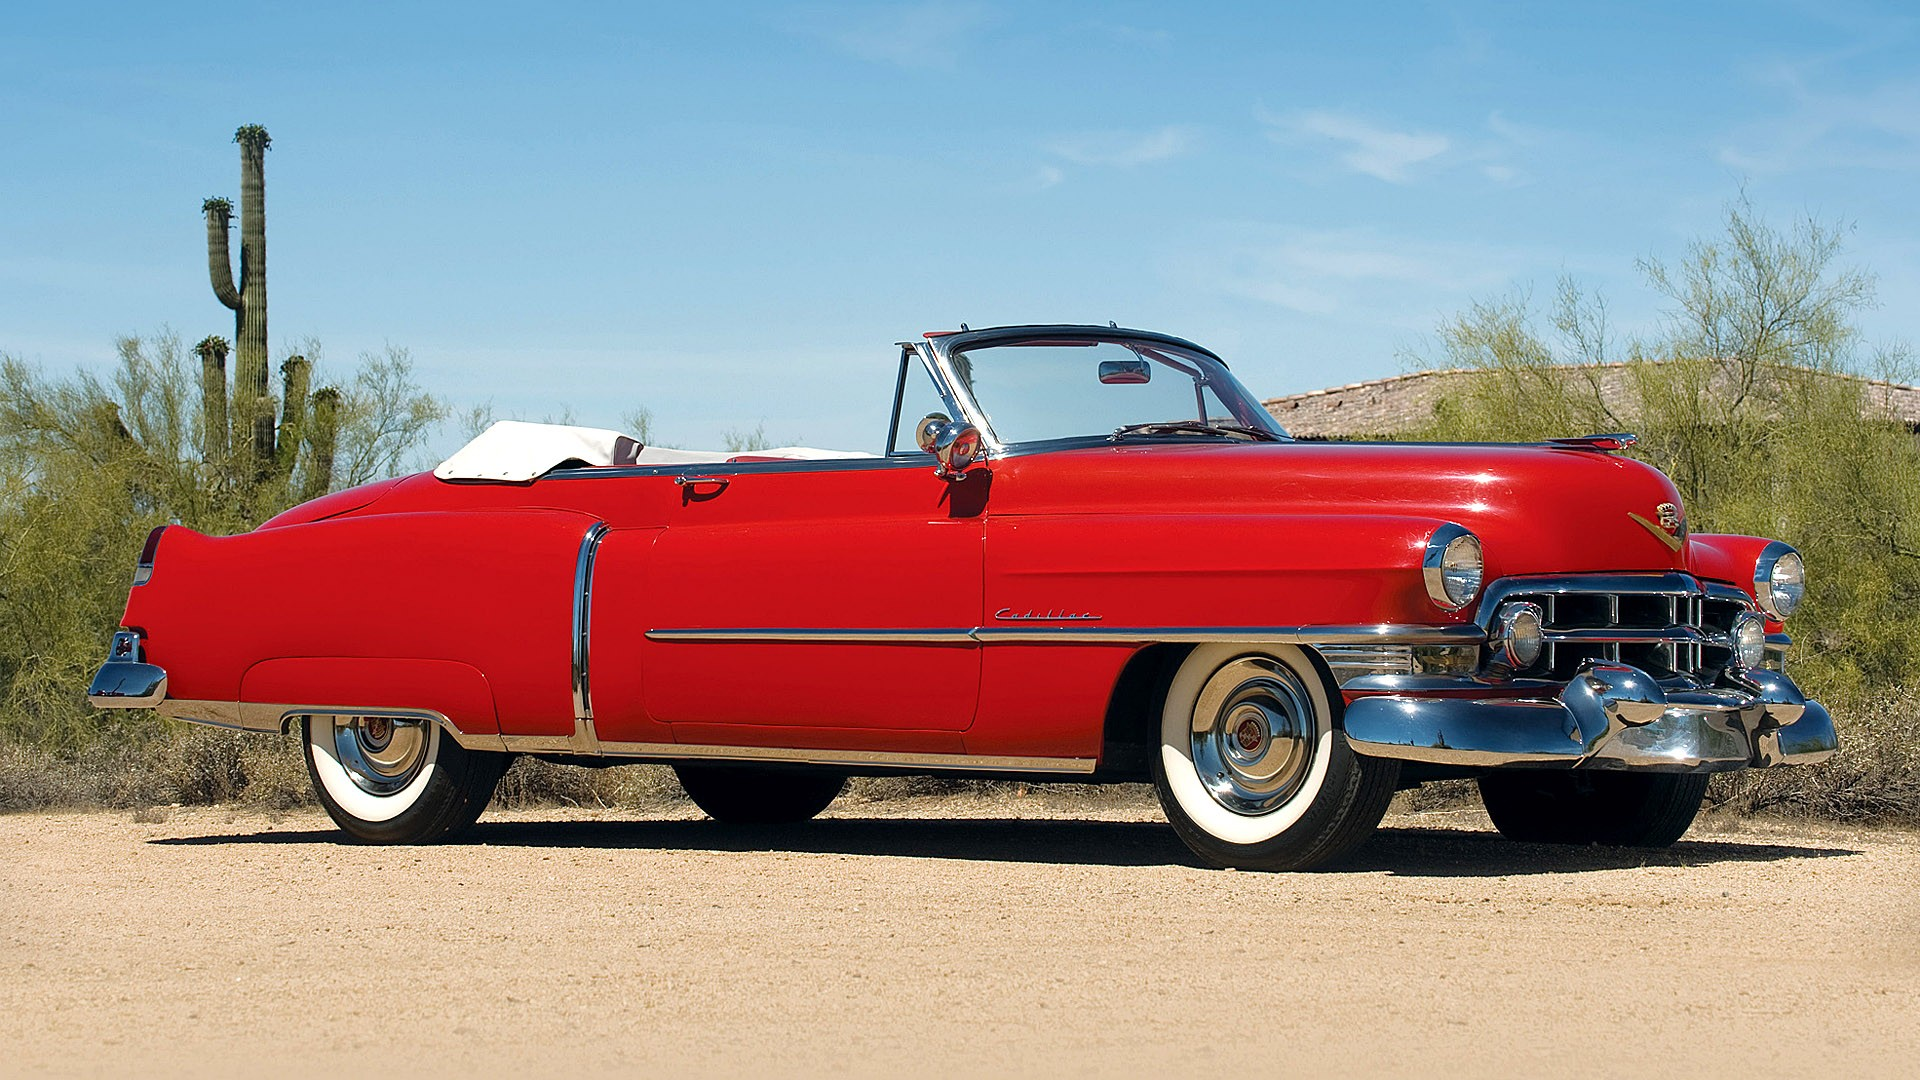 1950 Cadillac Sixty-two Convertible Full HD Wallpaper And